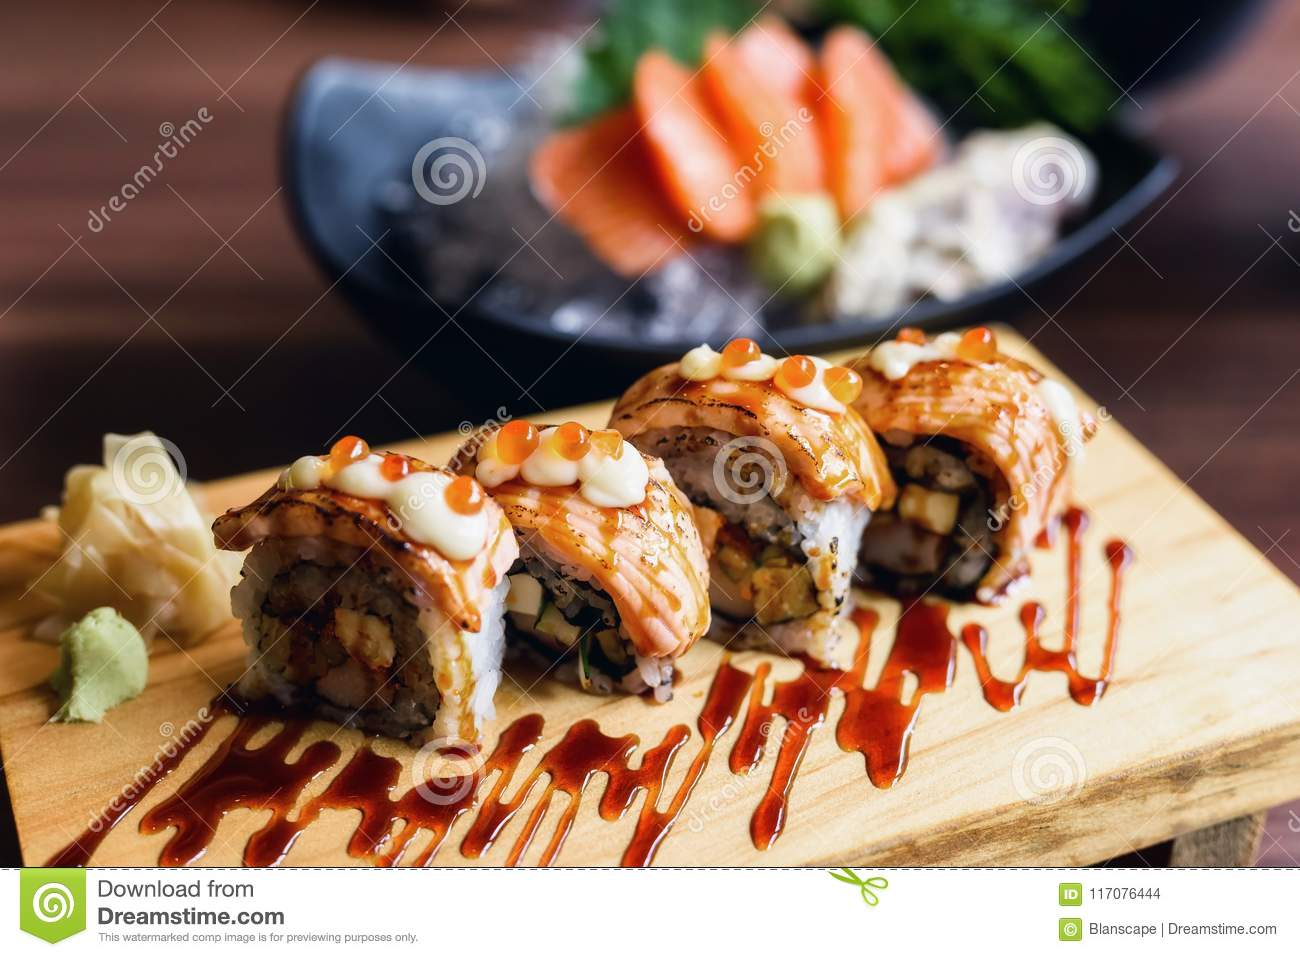 Grilled Salmon Sushi Nigiri Rolls Stock Photo Image Of California Delicious 117076444